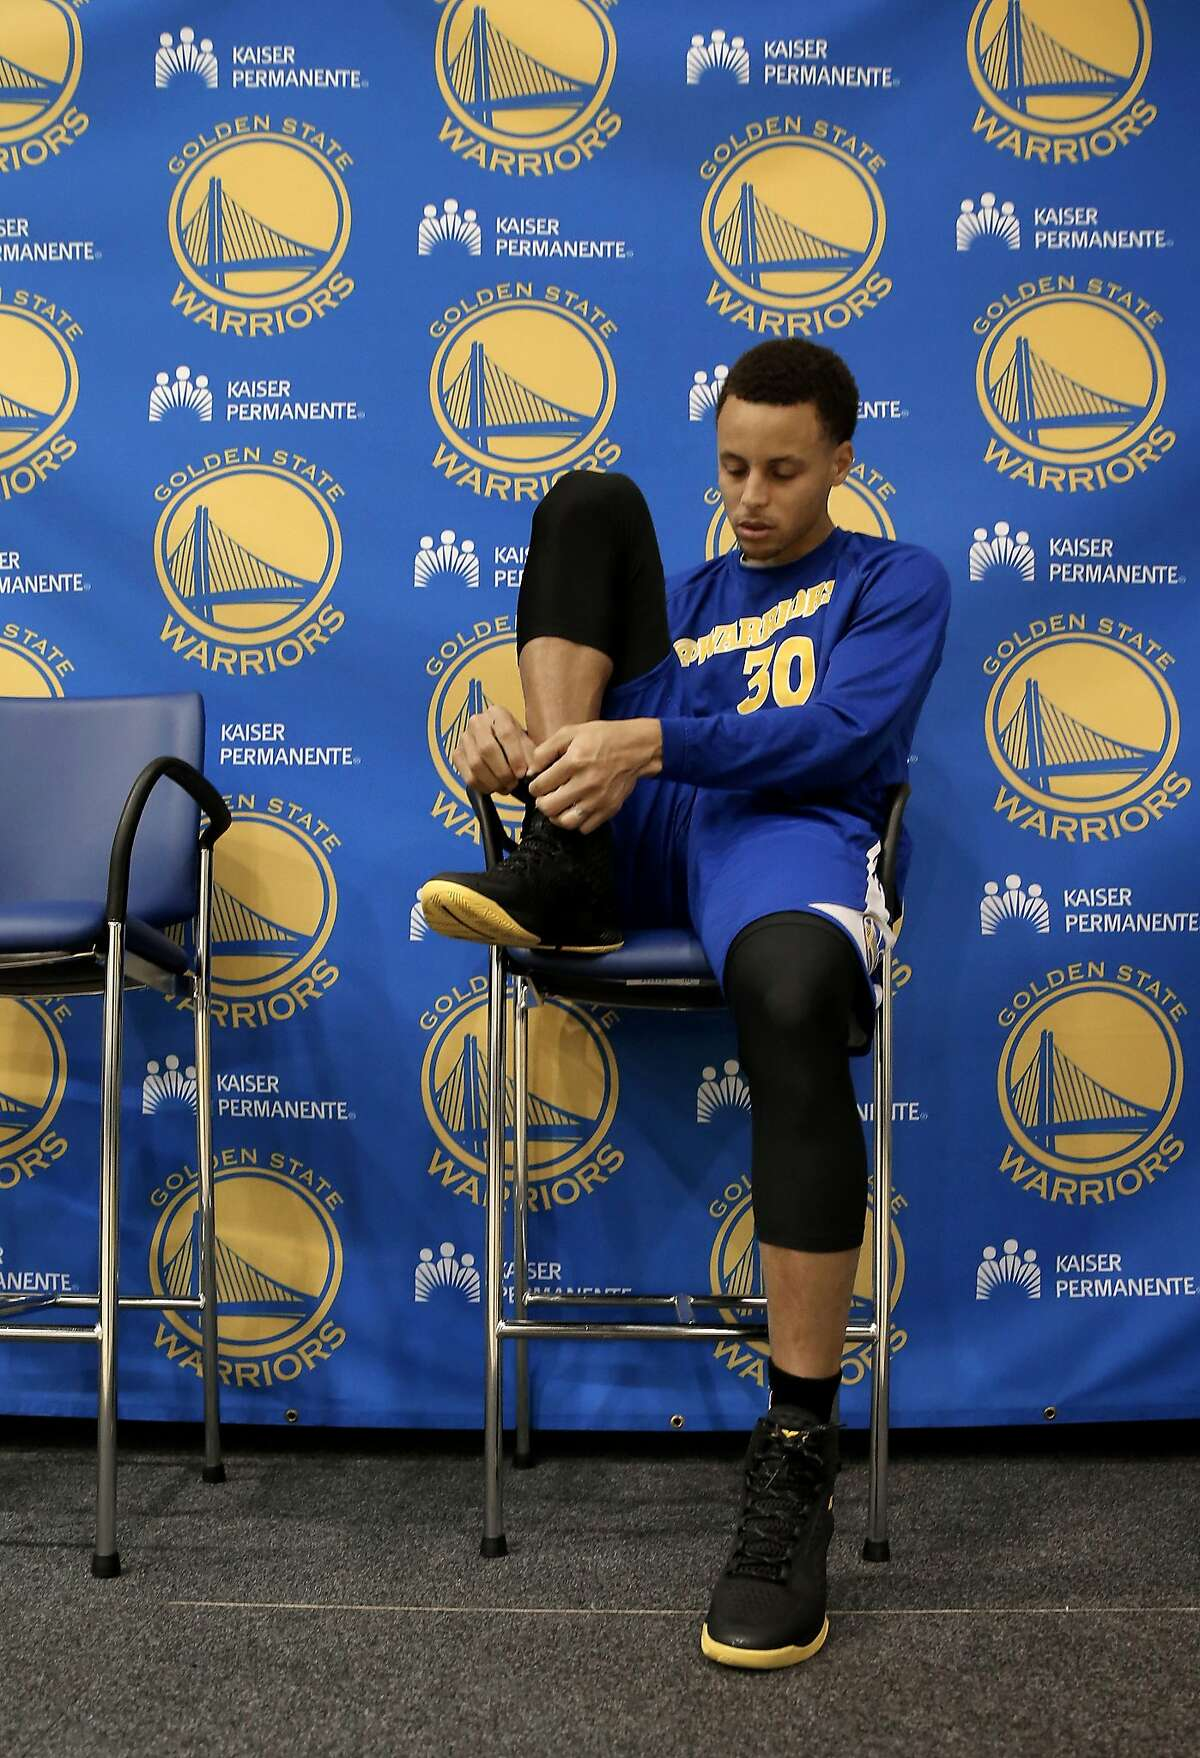 Stephen Curry gets ready for practice after being interviewed as the Golden State Warriors NBA basketball team held a media availability at their practice facility in Oakland, Calif., on Thurs. April 16, 2015, in preparation for the upcoming playoffs.